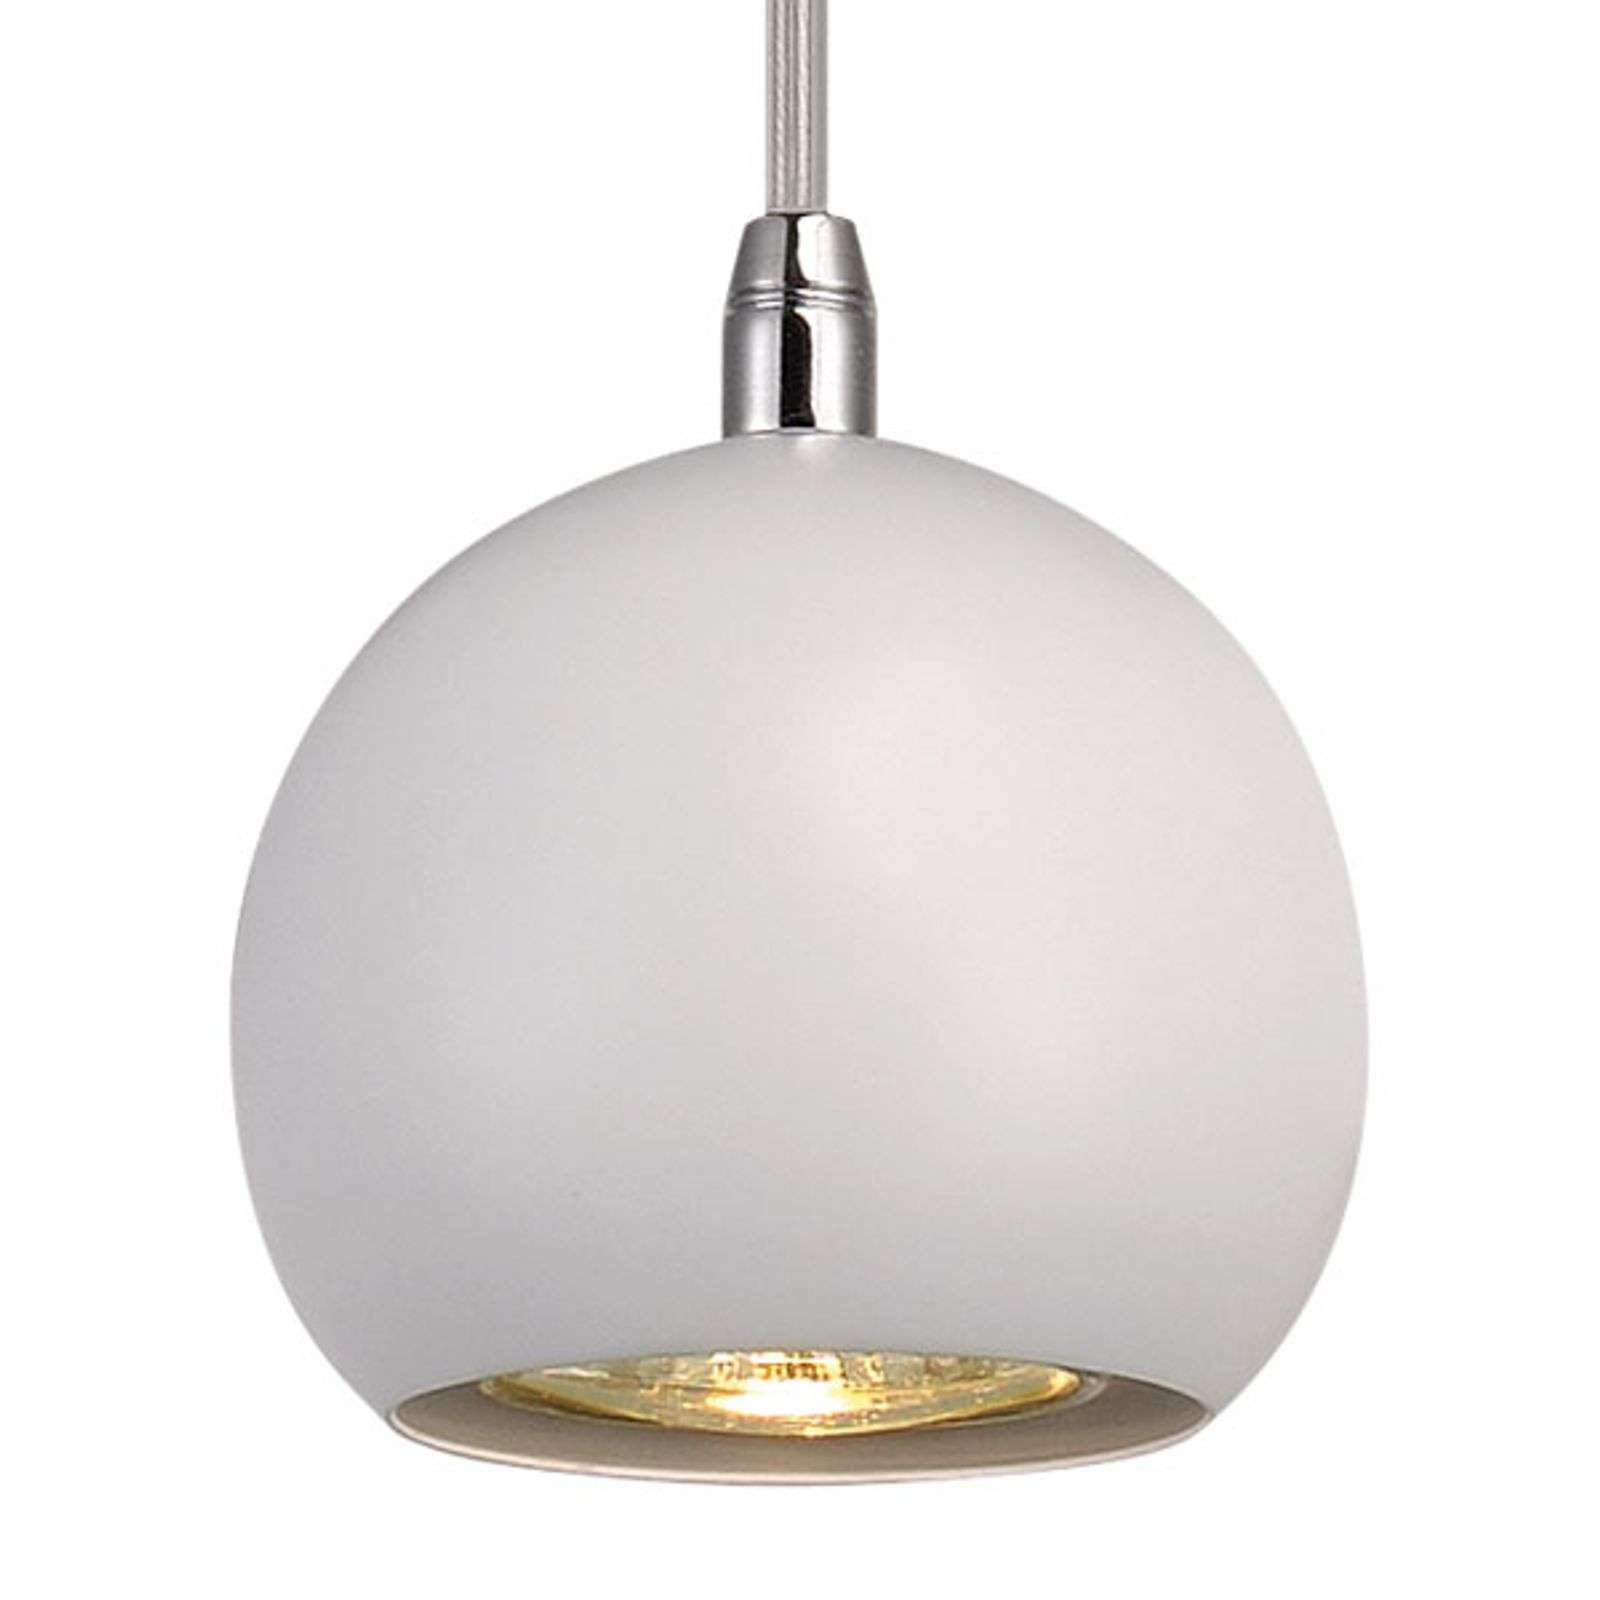 Suspension Light Eye pour rail monophasé blanc